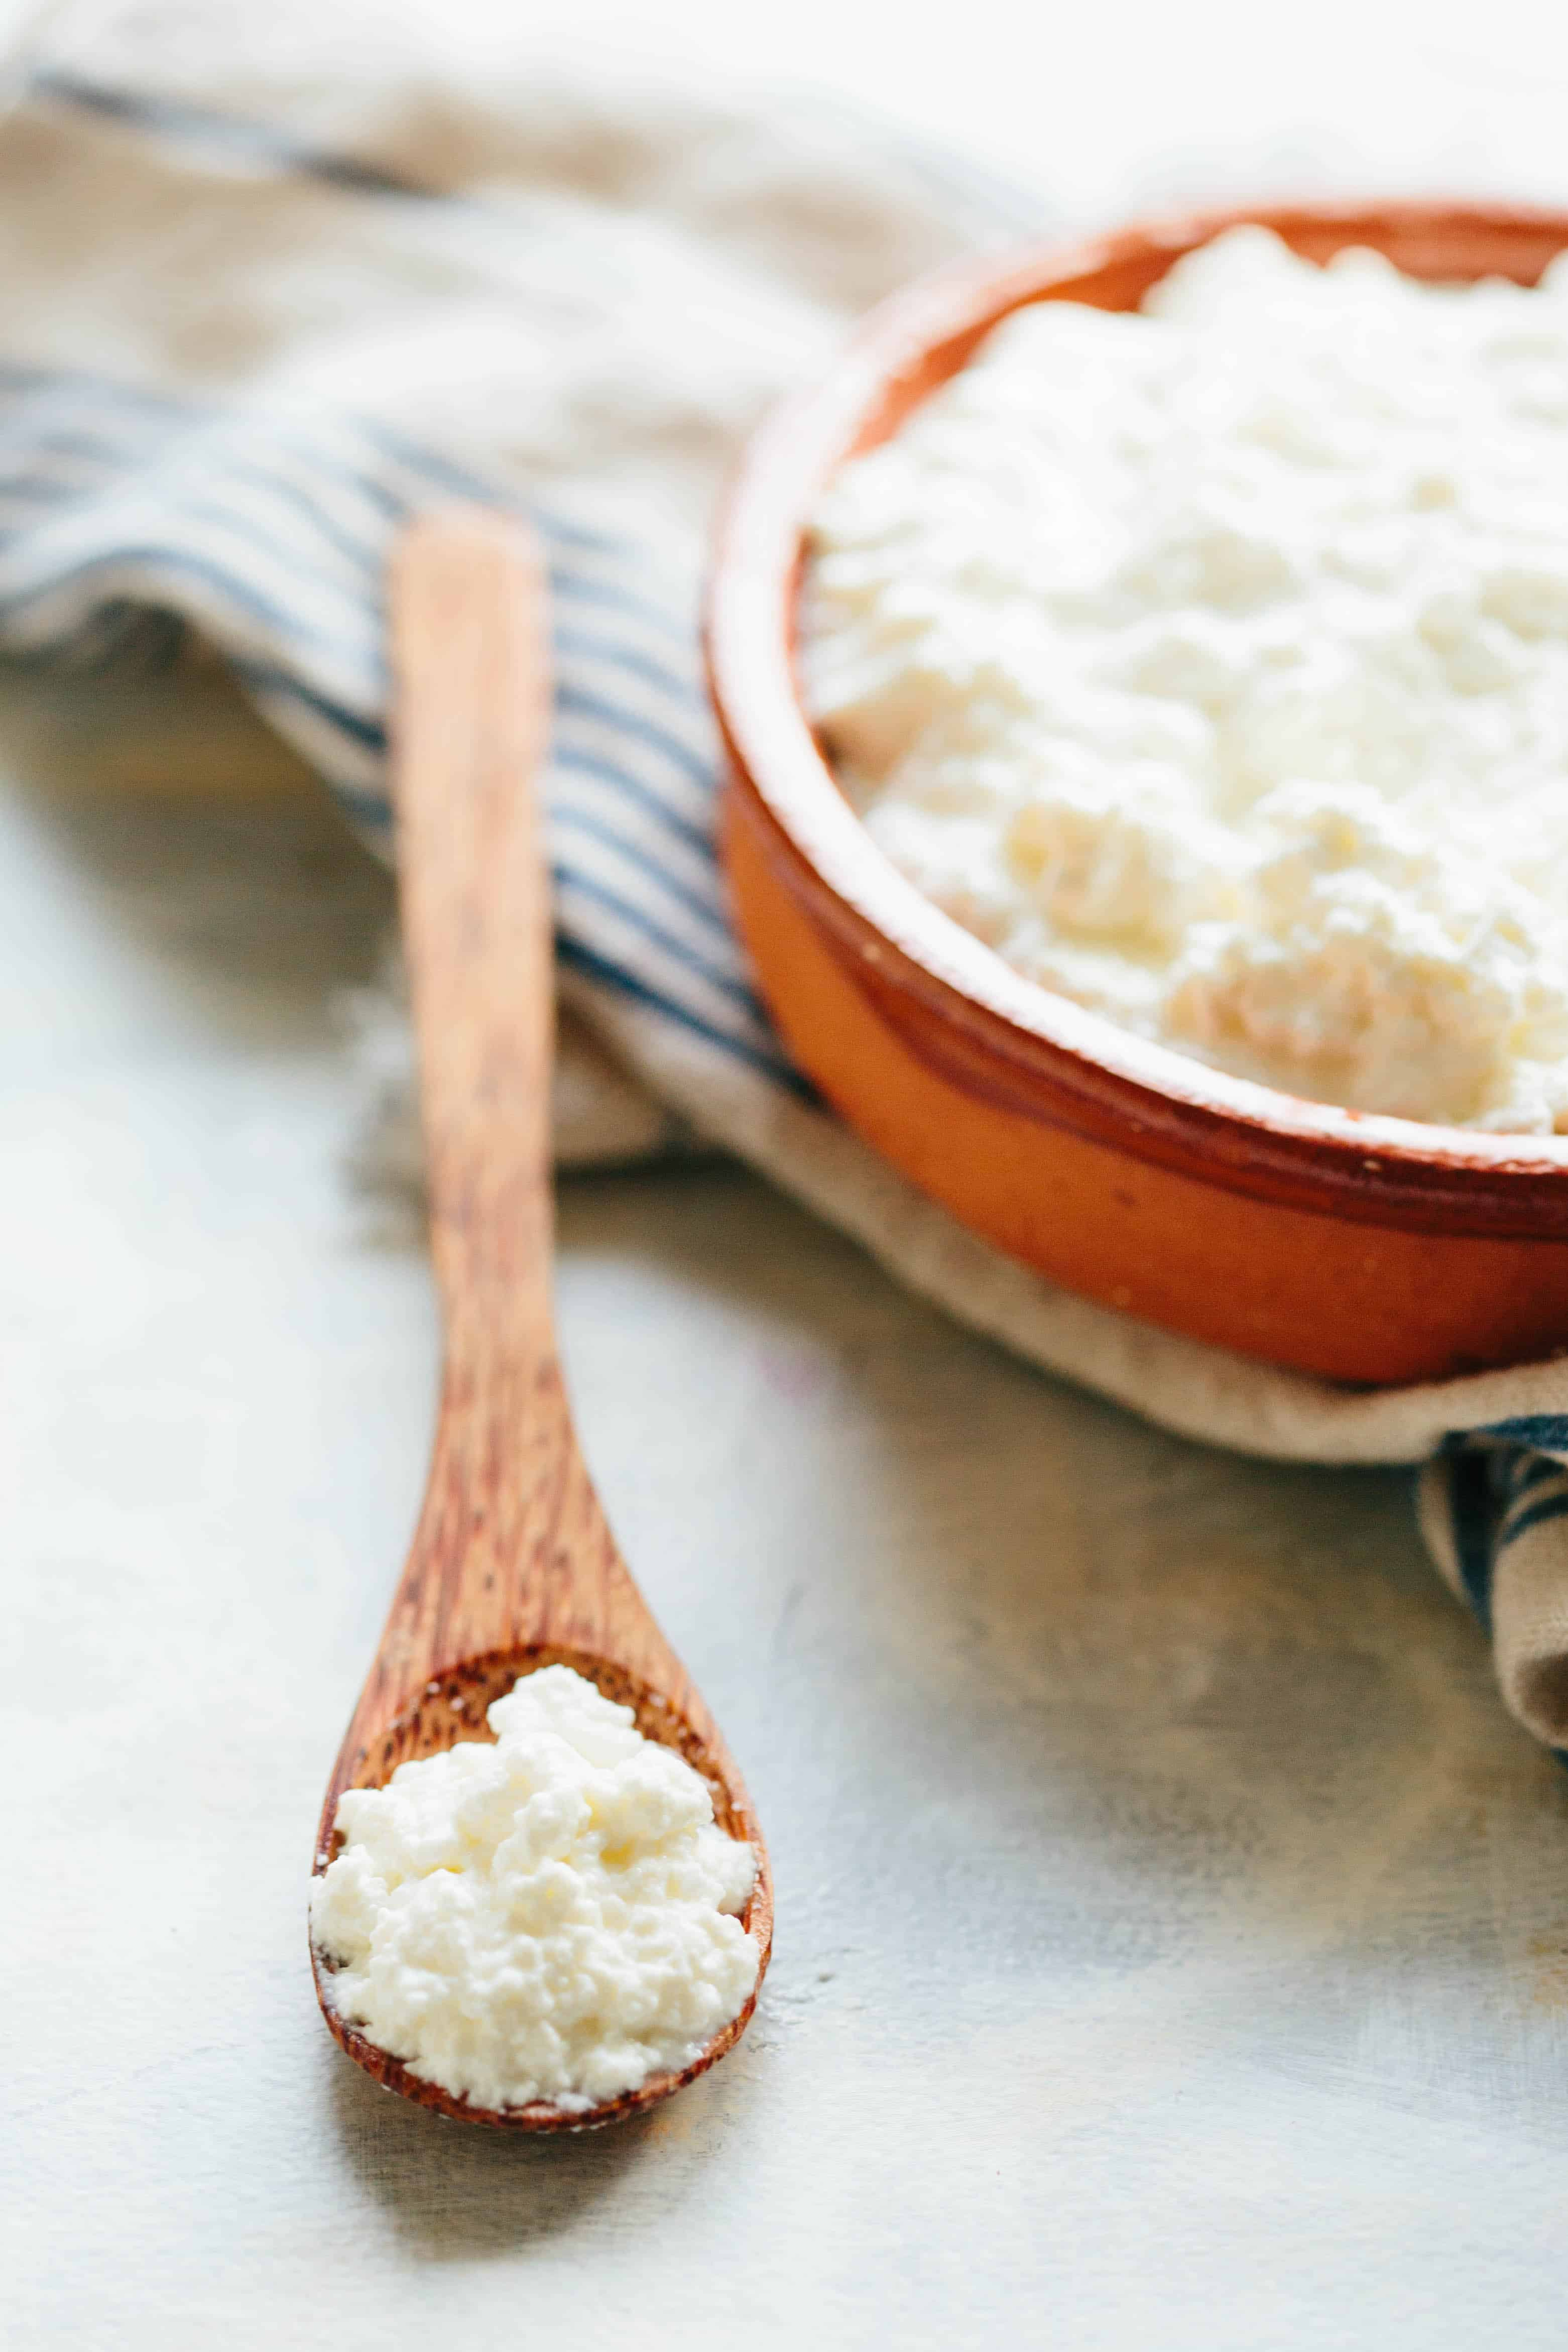 EASY HOMEMADE RICOTTA CHEESE | Foolproof method for making the creamiest, most delicious homemade ricotta cheese. This recipe uses buttermilk for the best flavor. | #easy #ricotta #cheese #recipe #Italian #method #foolproof #homemade | ColeyCooks.com